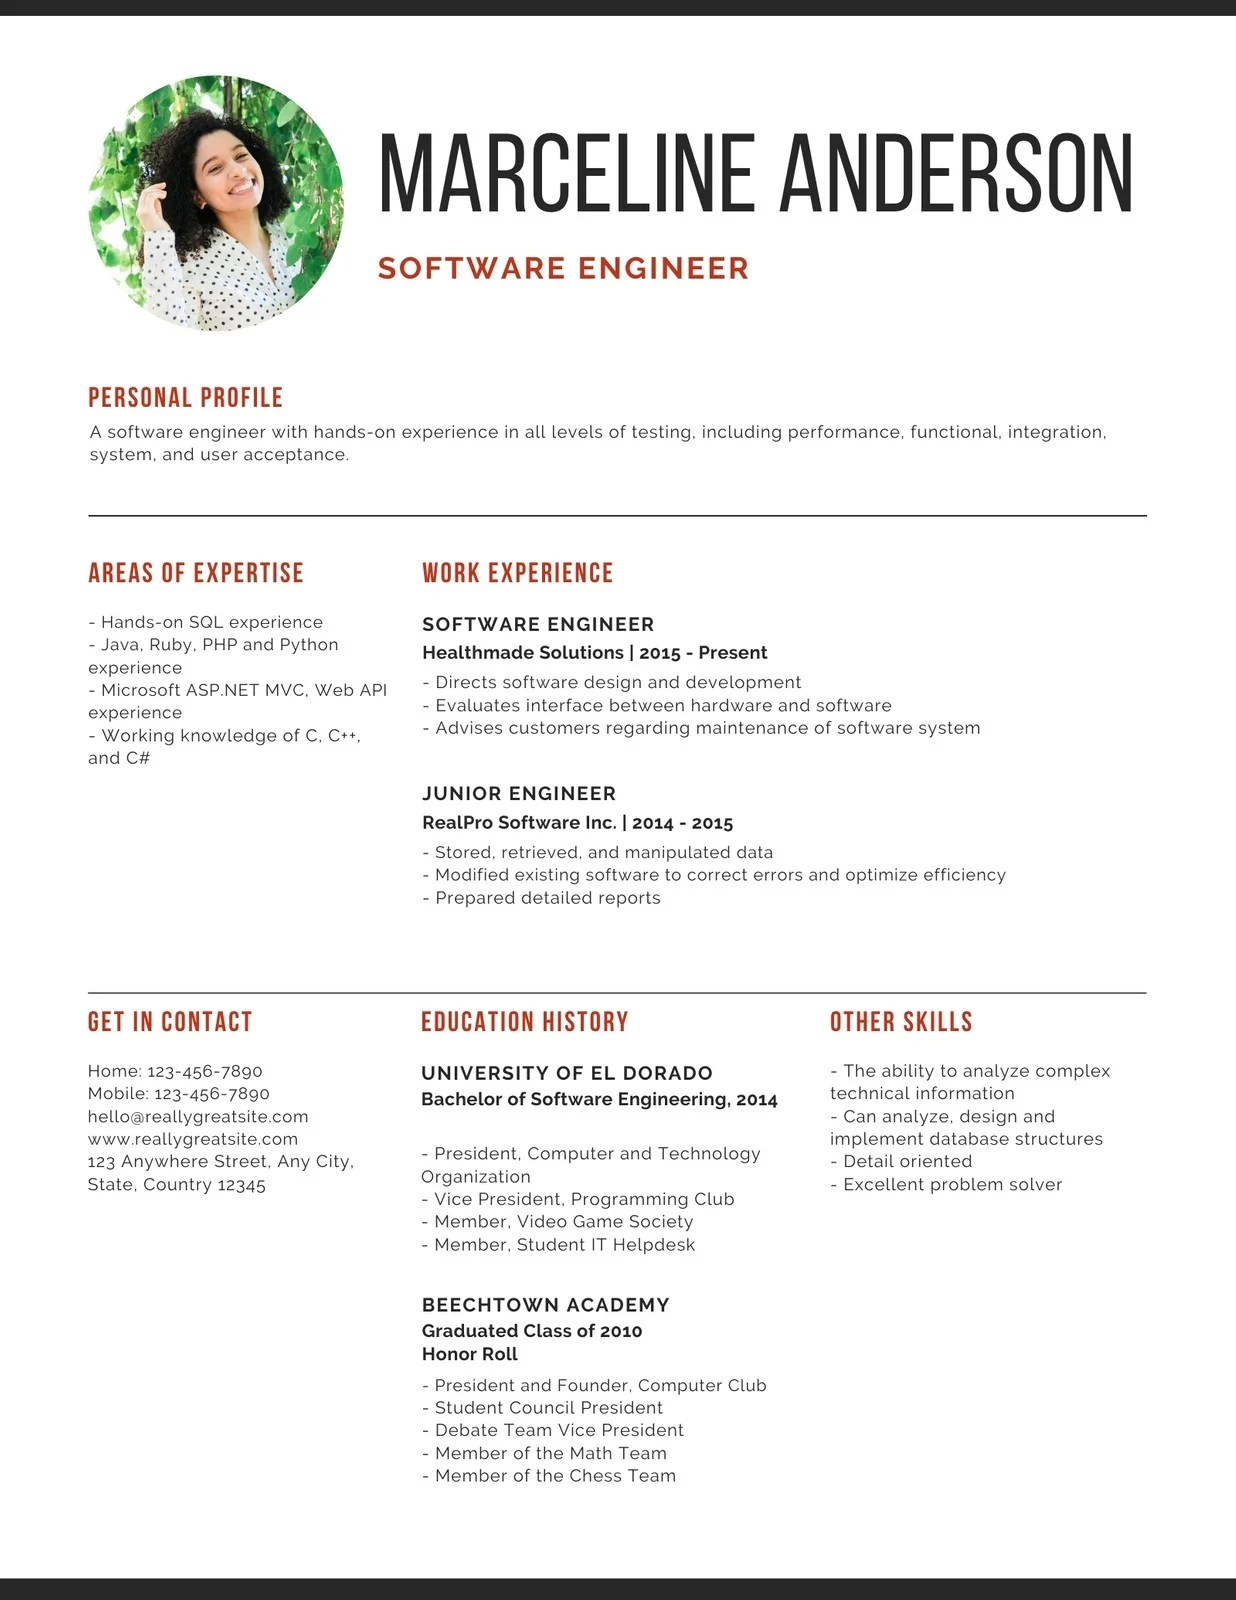 Pillar is a free resume/cv template available in both an html5 bootstrap template for online resumes and a sketch template for printed versions. Simple Professional Software Engineer Resume Templates By Canva